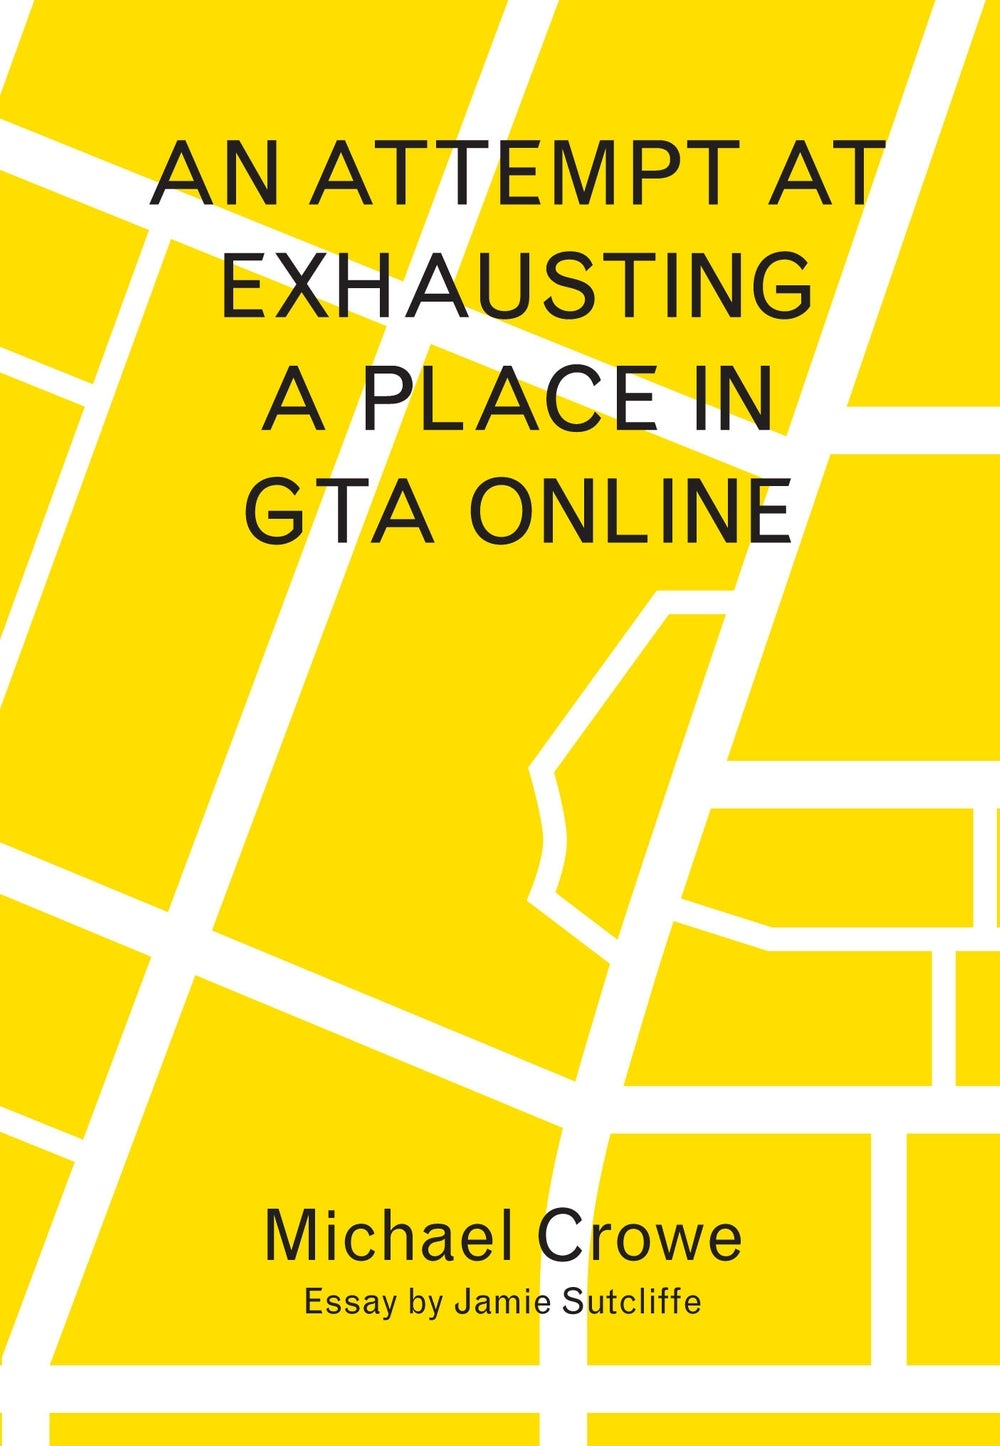 Image of An Attempt at Exhausting a Place in GTA Online Online